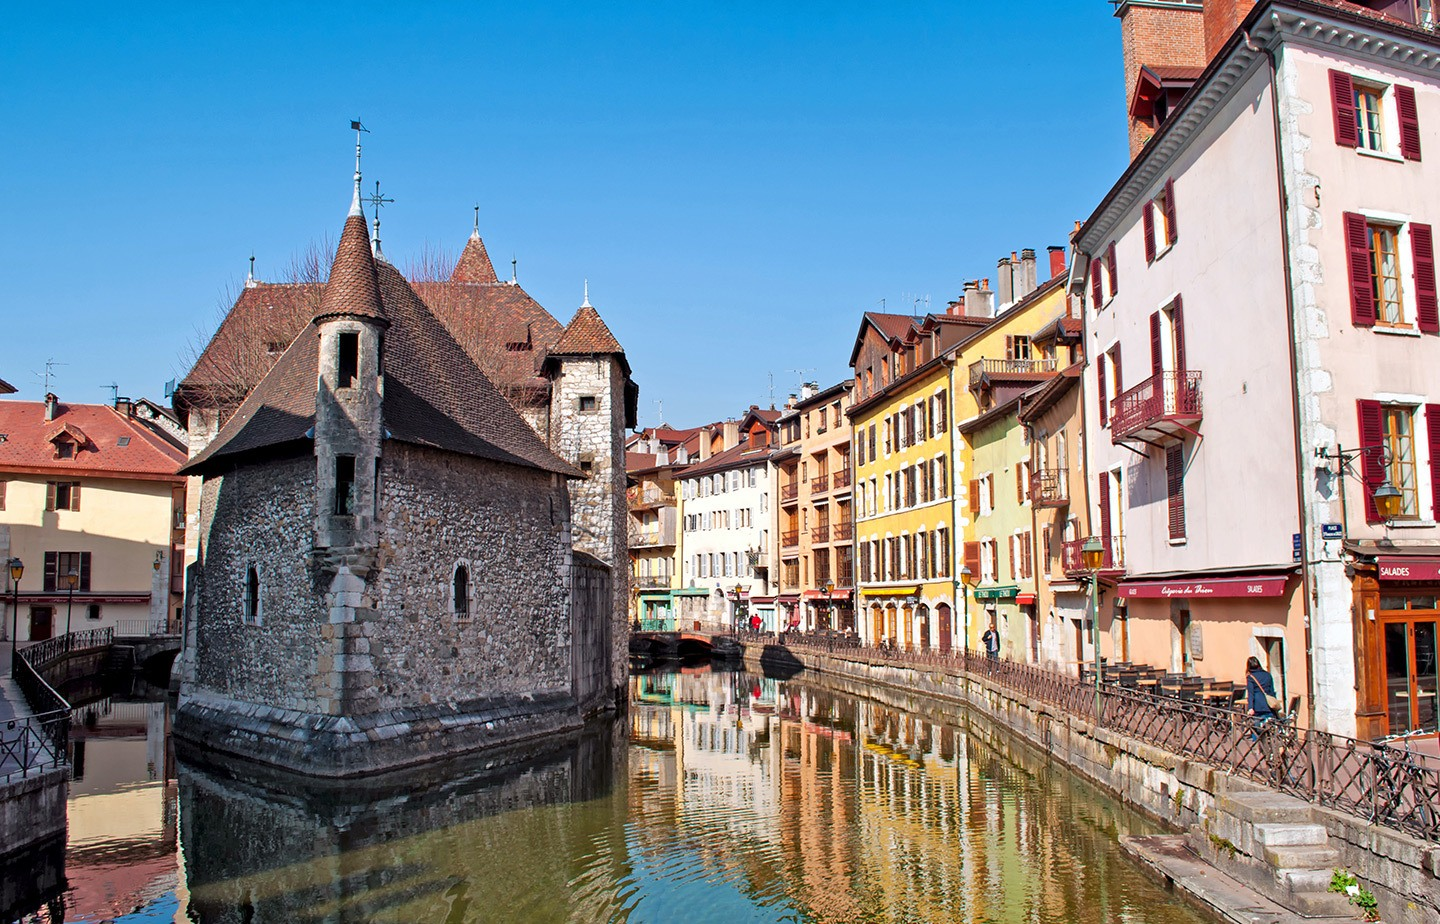 The best things do in Annecy, France – what to see and do in this lakeside town, including old town walks, castles, boat trips, beaches and markets.